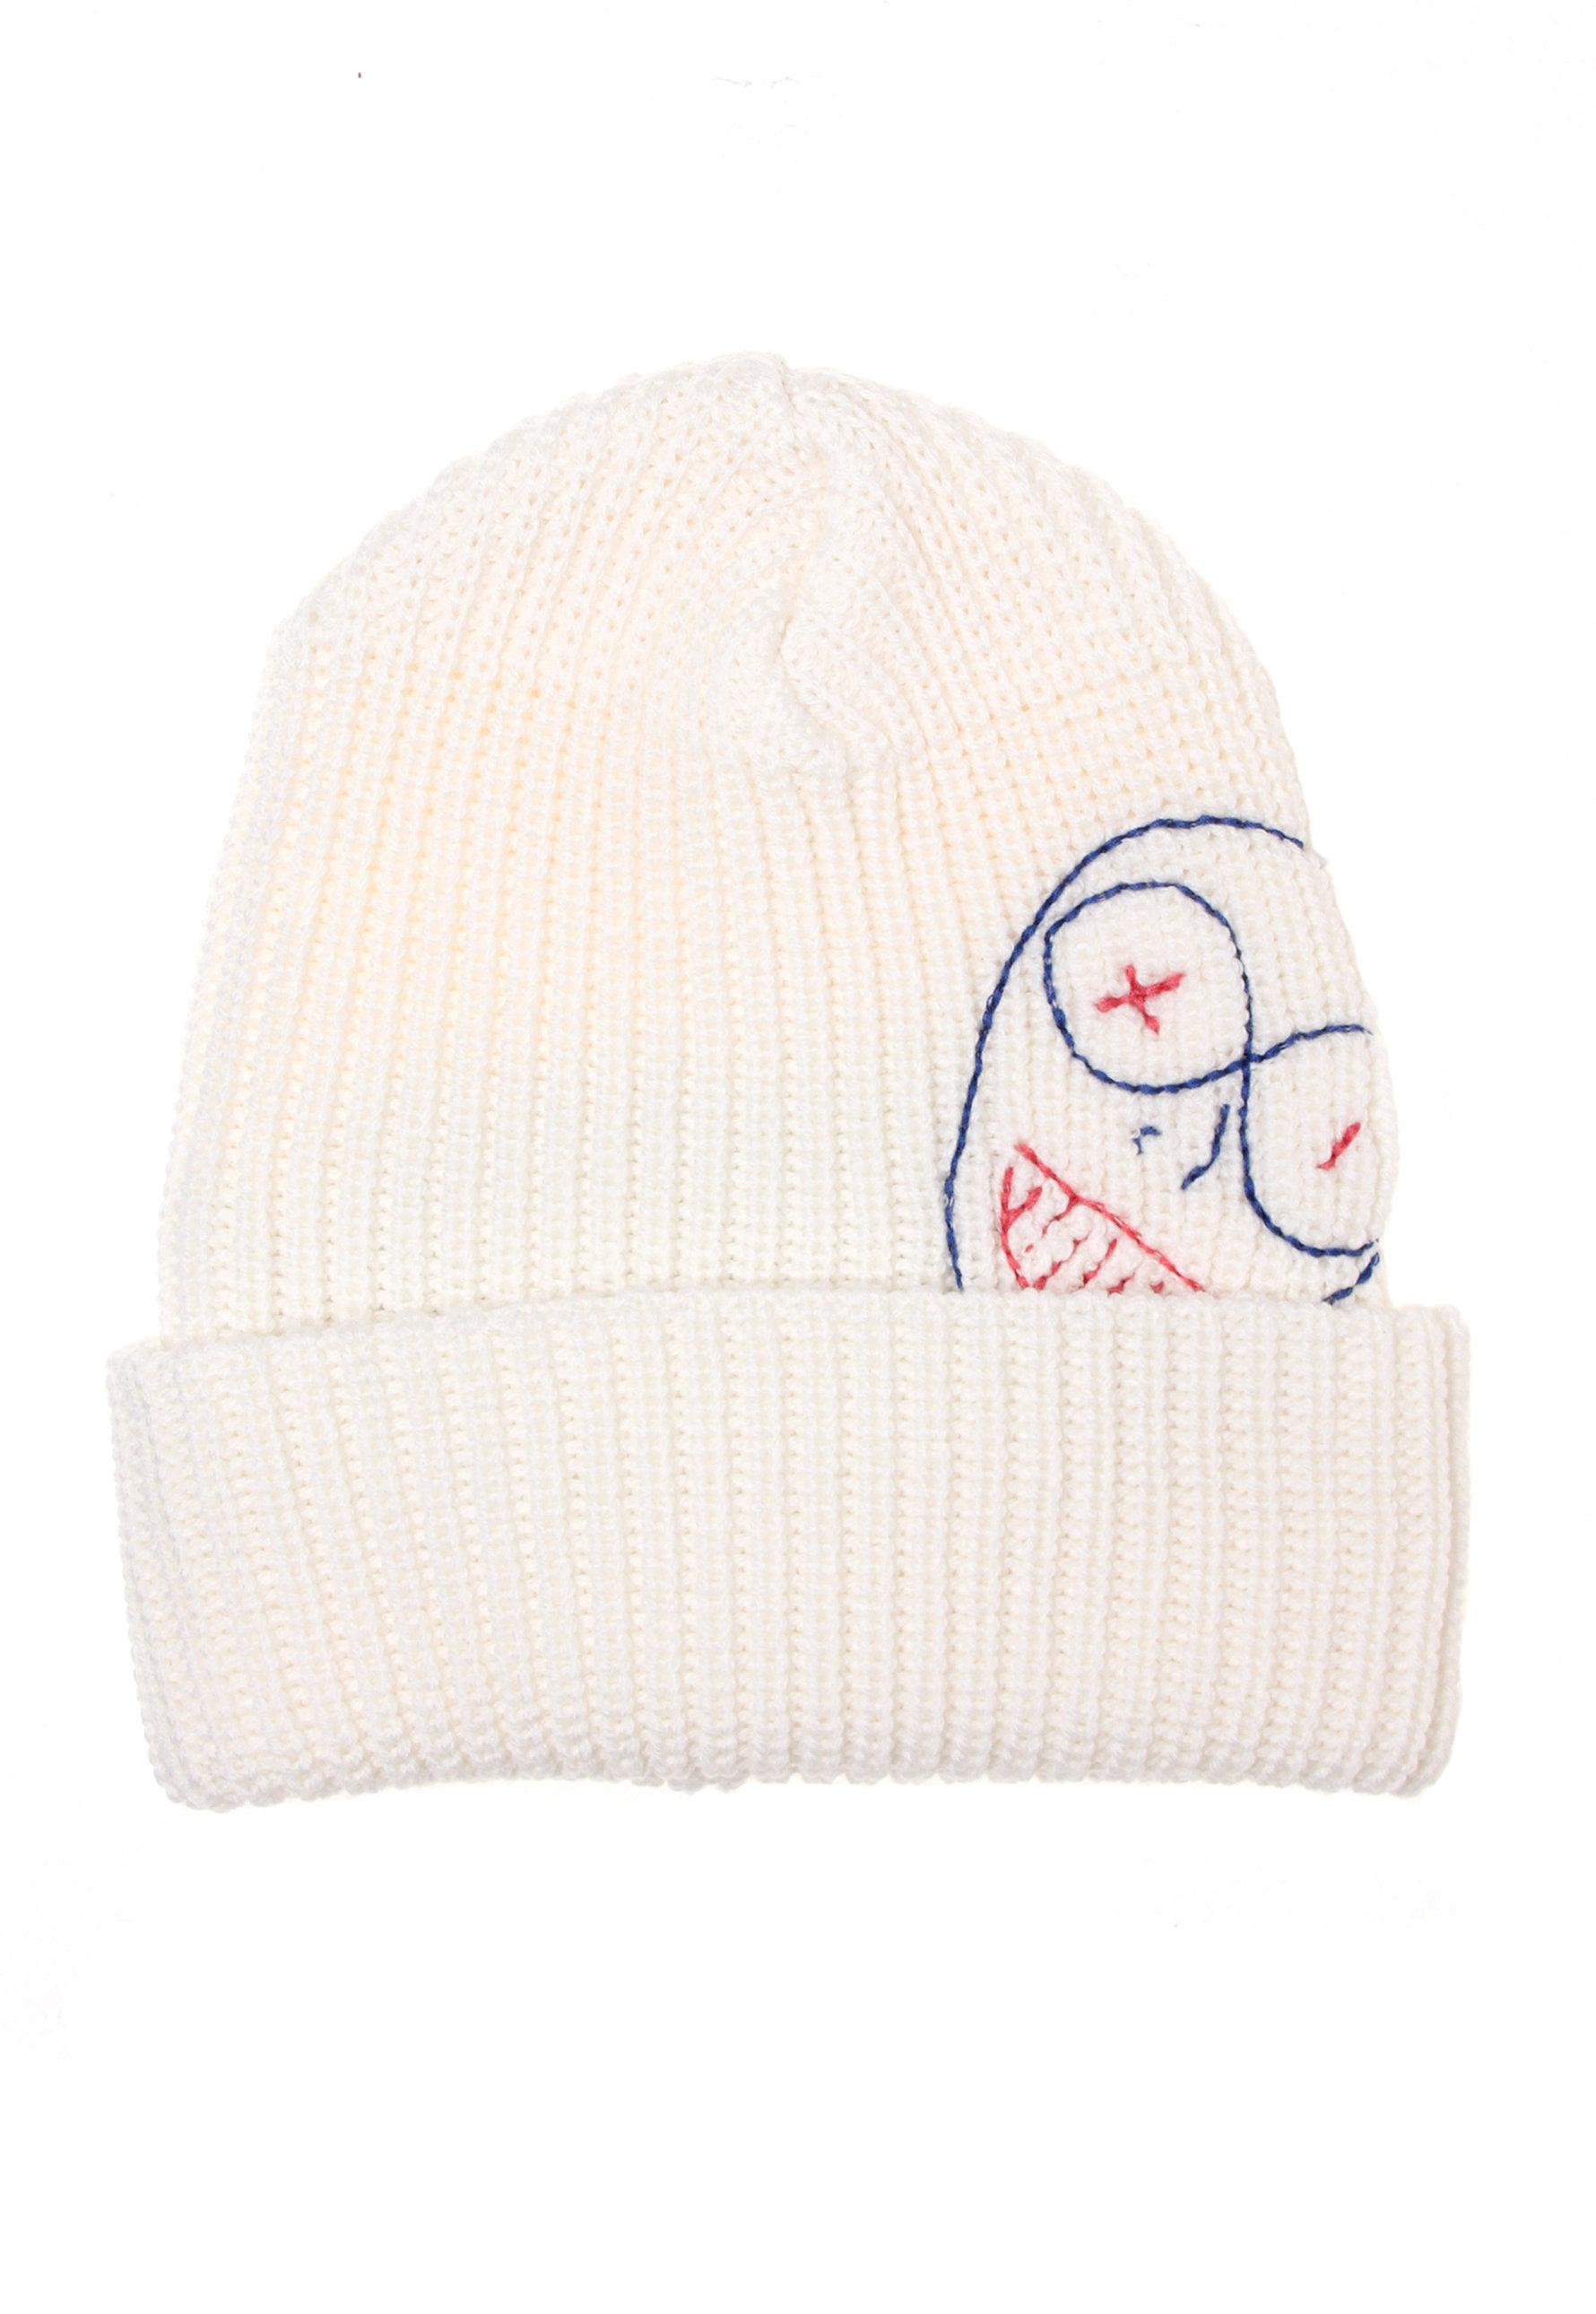 Lyst - Vivienne Westwood Puppet Embroidery Beanie Hat Off White in White 9532d4ec6e8